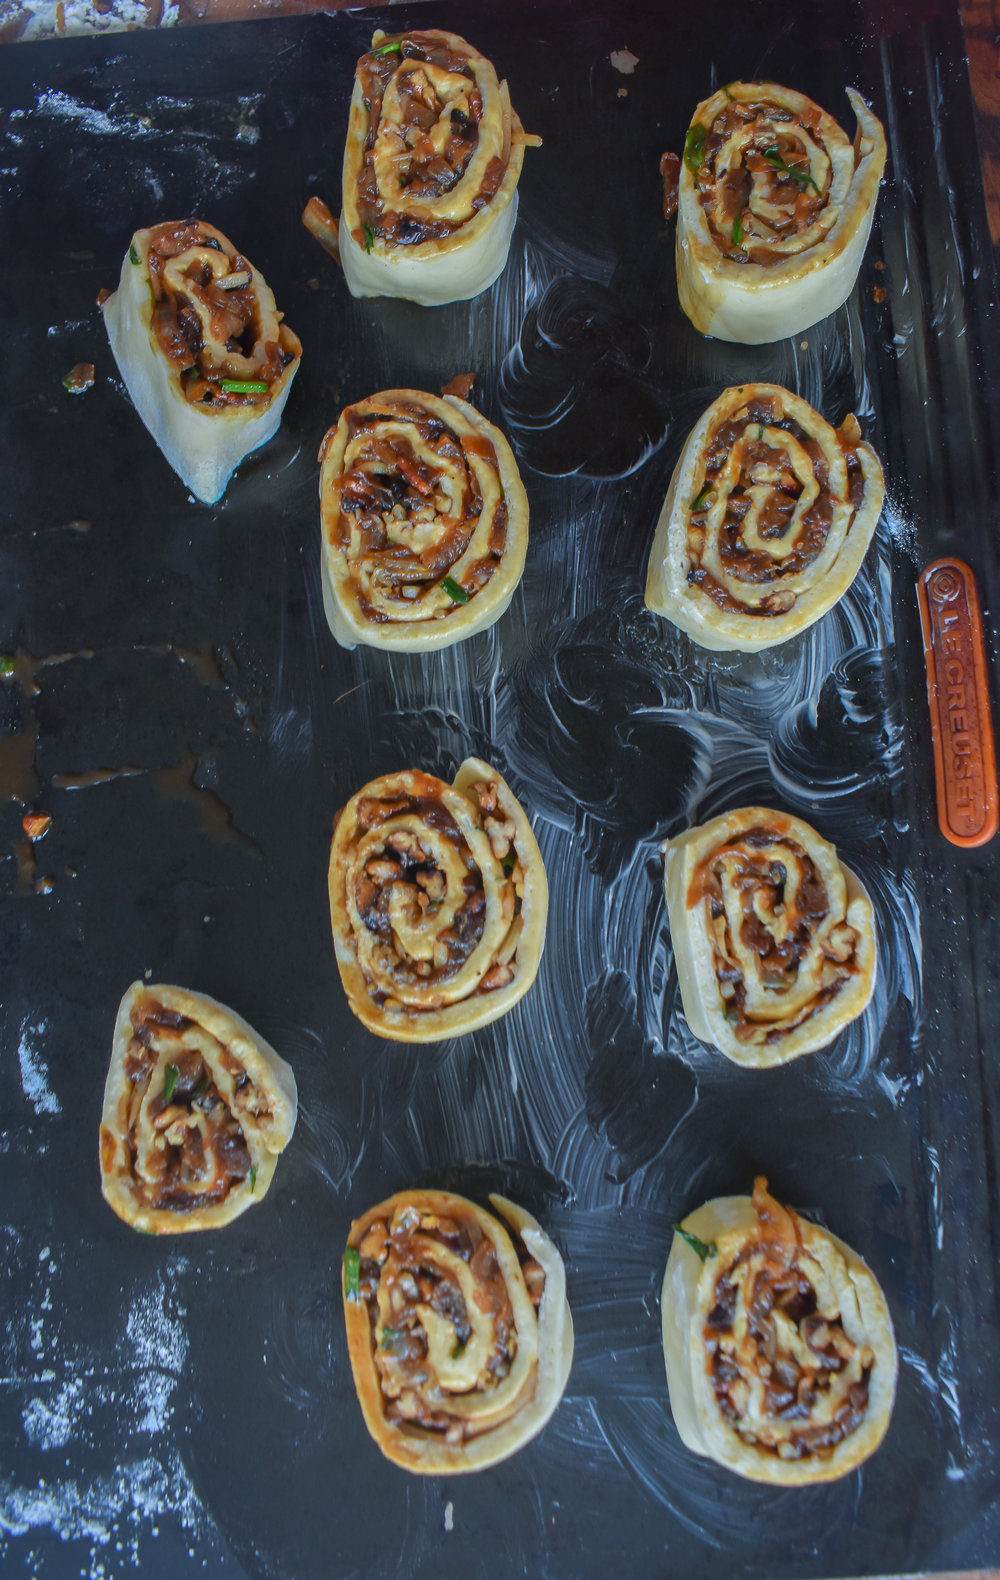 13. Place the rolls on a buttered/oiled baking sheet and add to oven at 375F. Bake for 10 minutes. Pull out and brush down with melted vegan butter with a pastry brush and add a sprinkle of cheese. Bake for another 10 minutes.